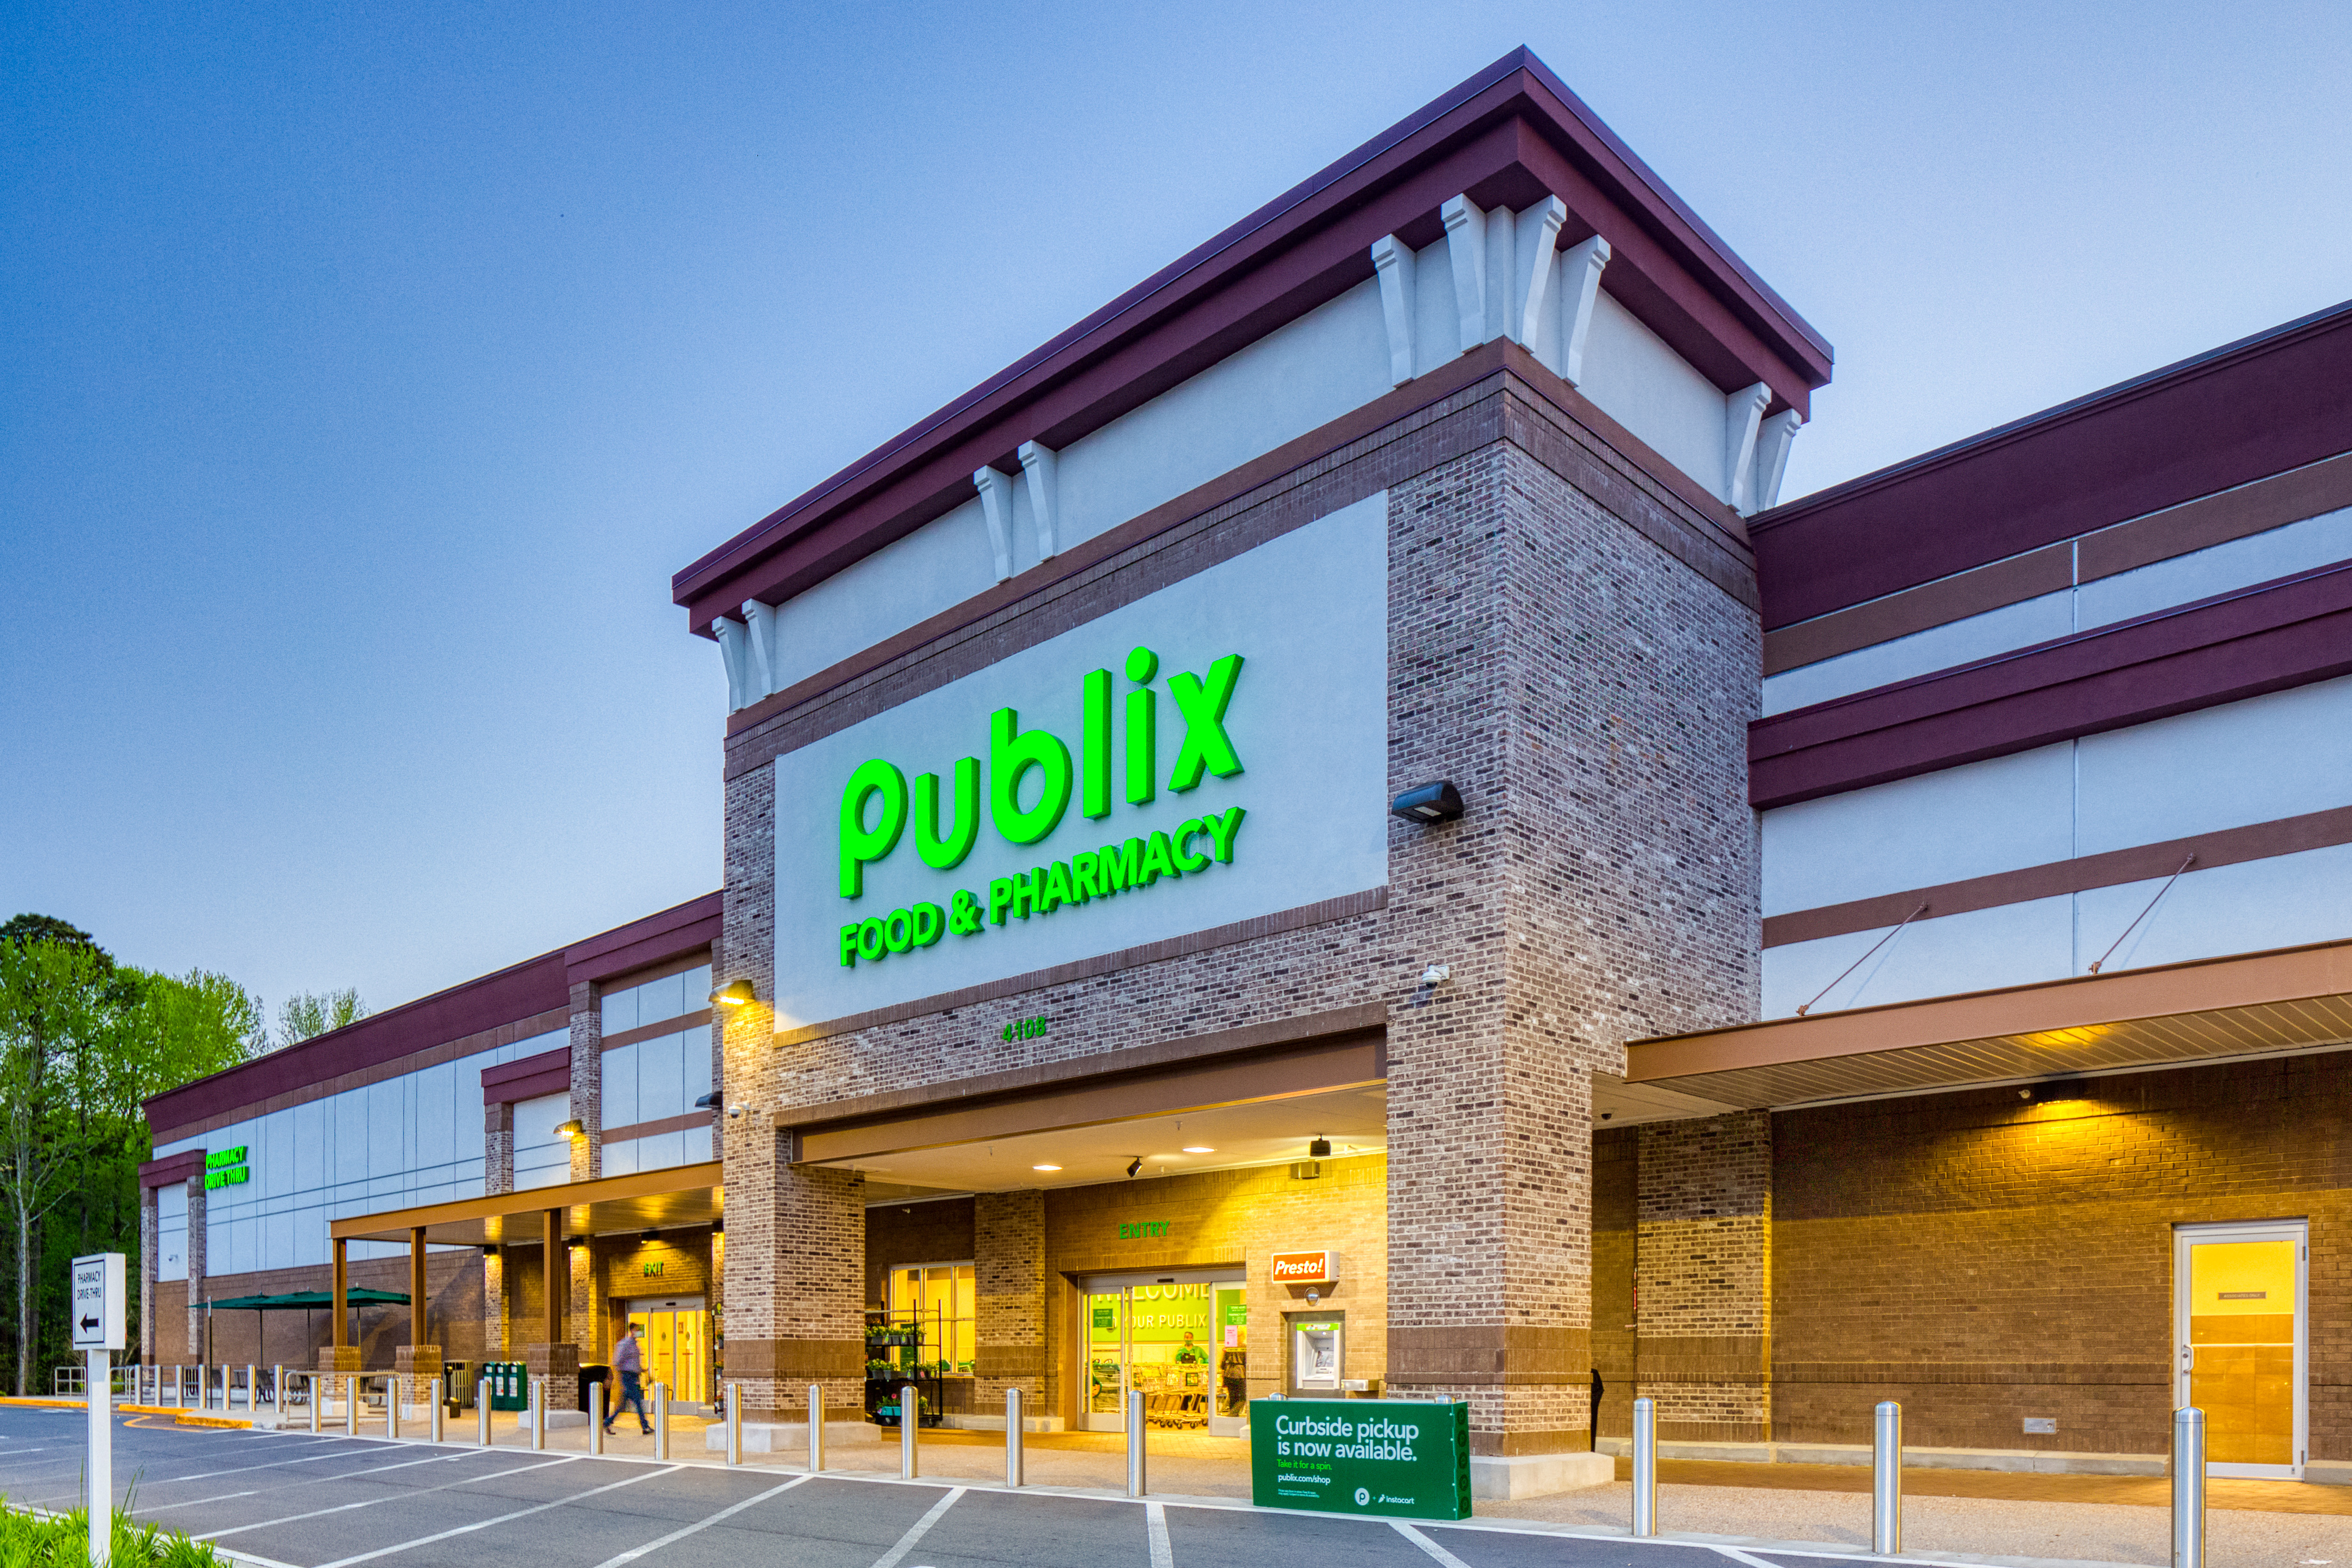 Hanley Investment Group Arranges Purchase of a Newly Constructed Publix-anchored Shopping Center in Atlanta Metro for $20.05 Million